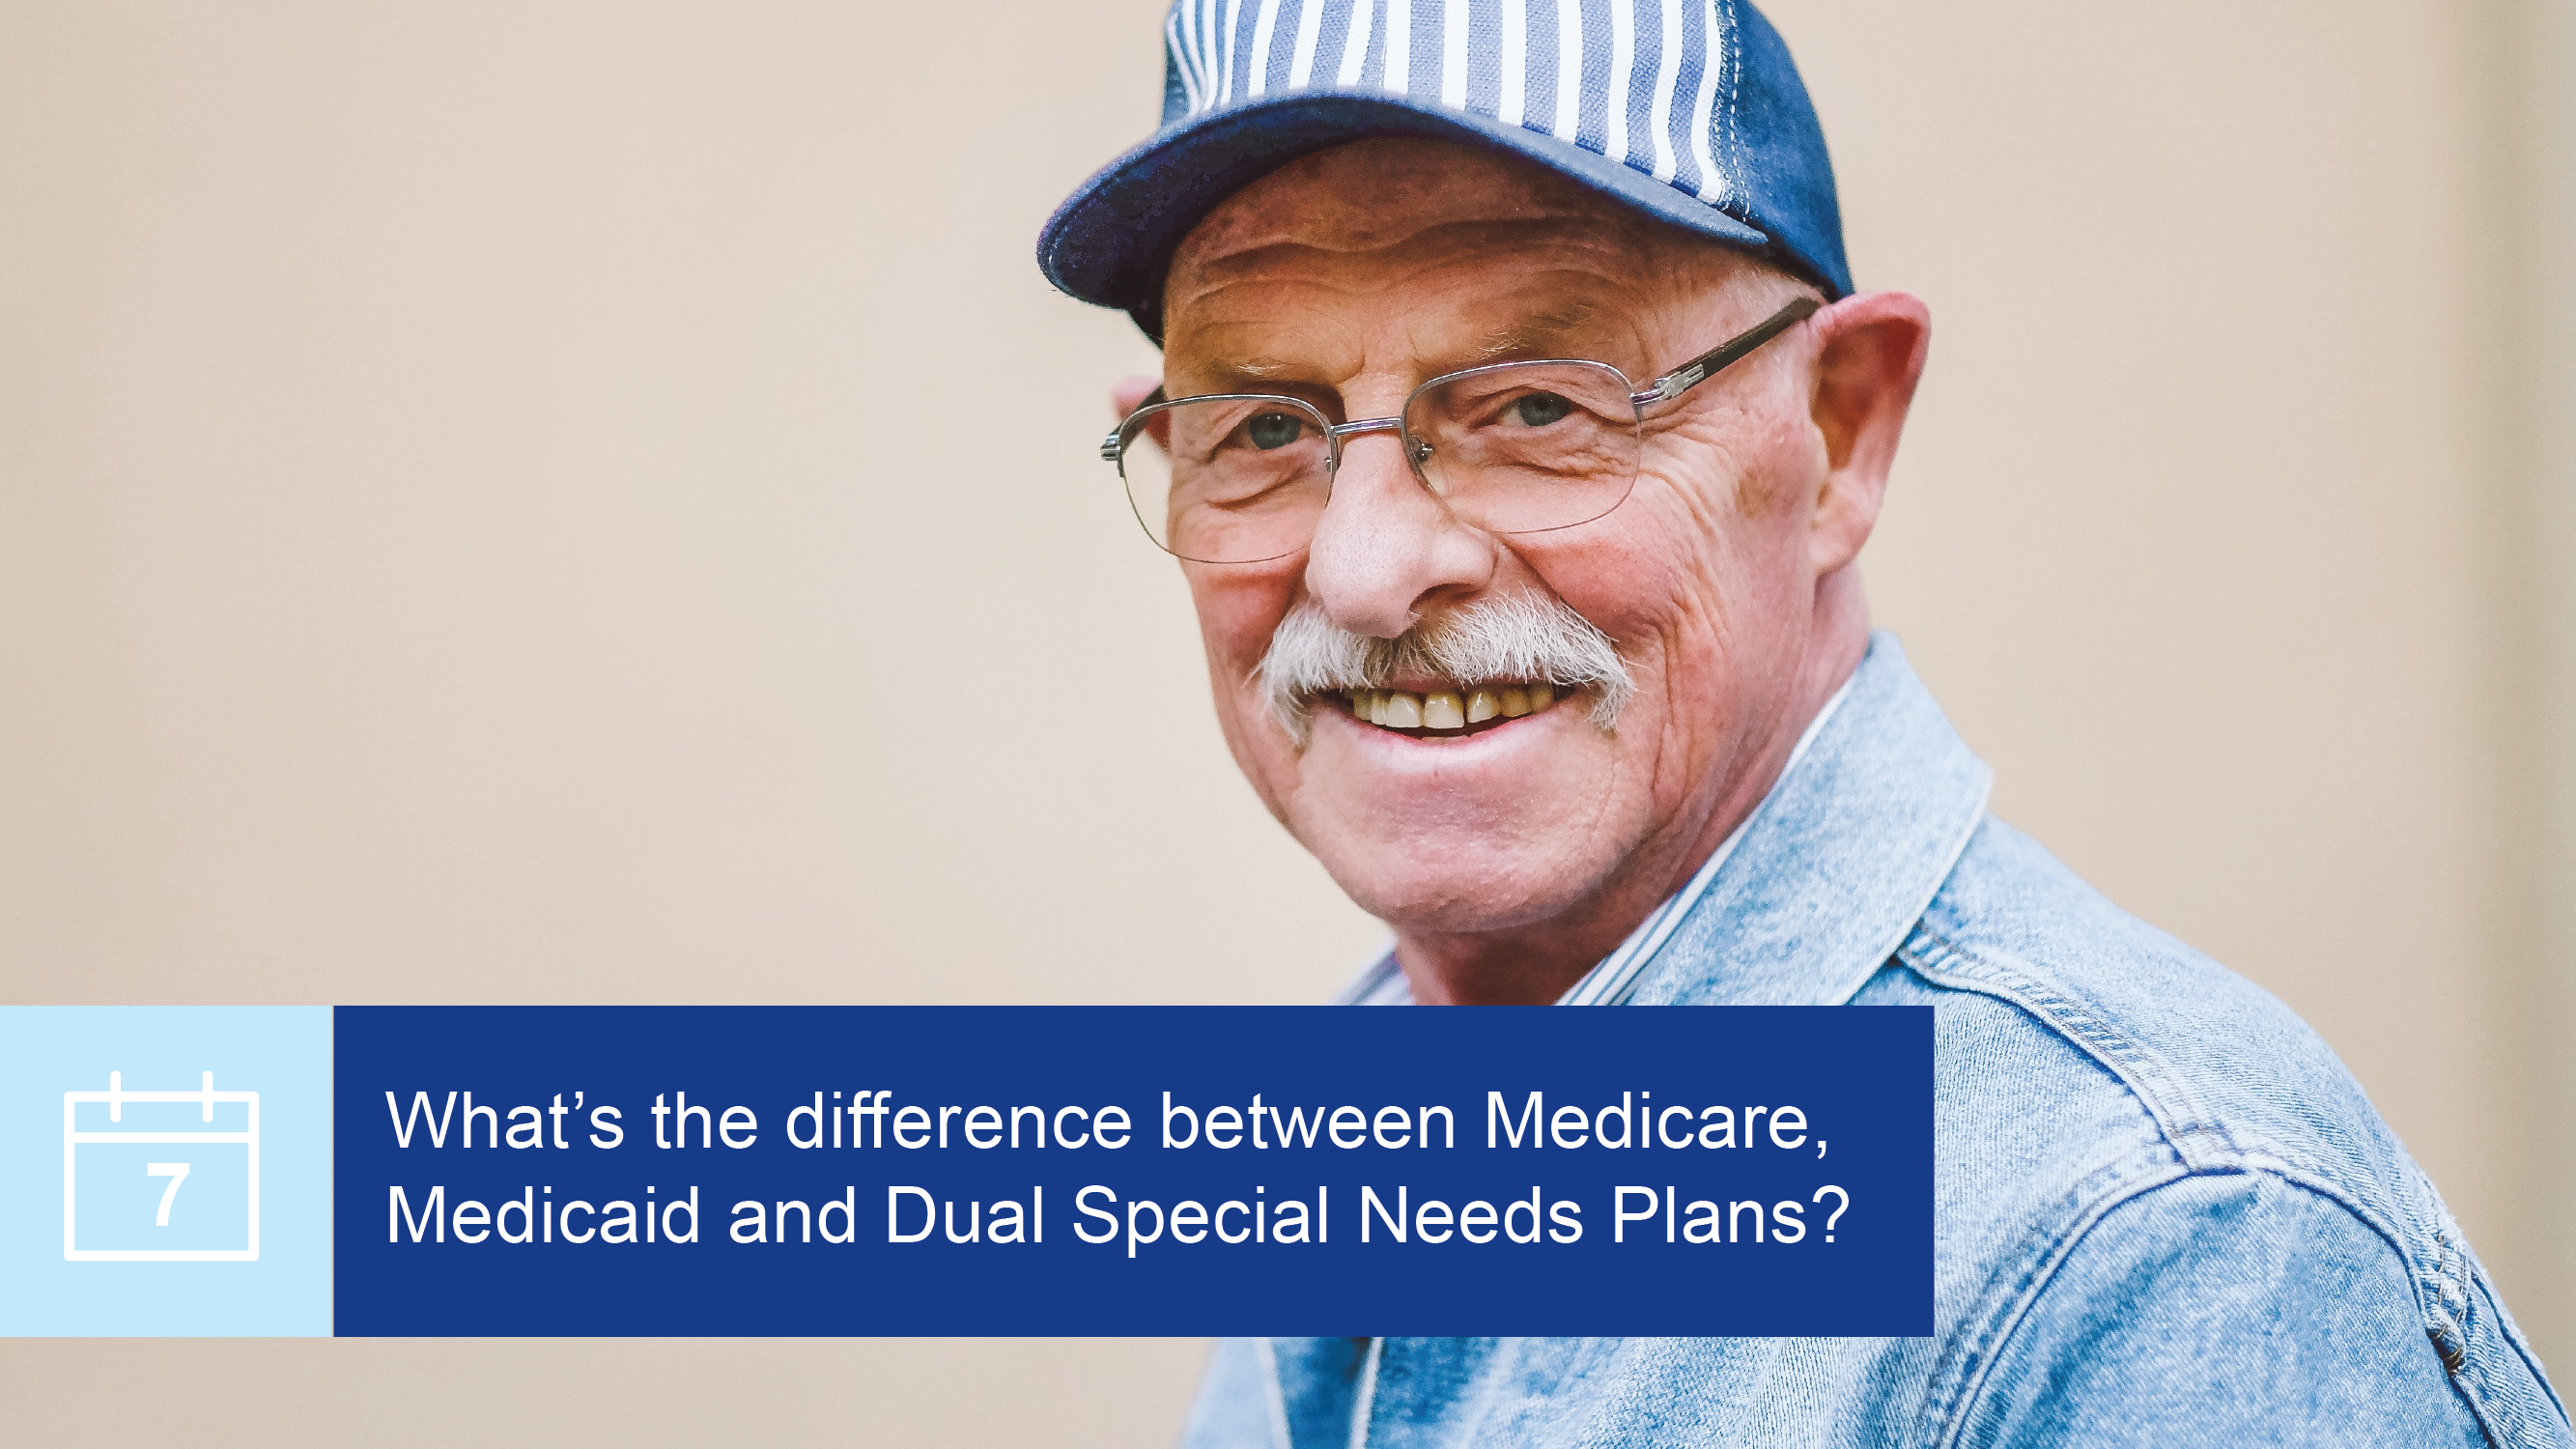 What's the difference between Medicare, Medicaid, and Dual Special Needs Plans?